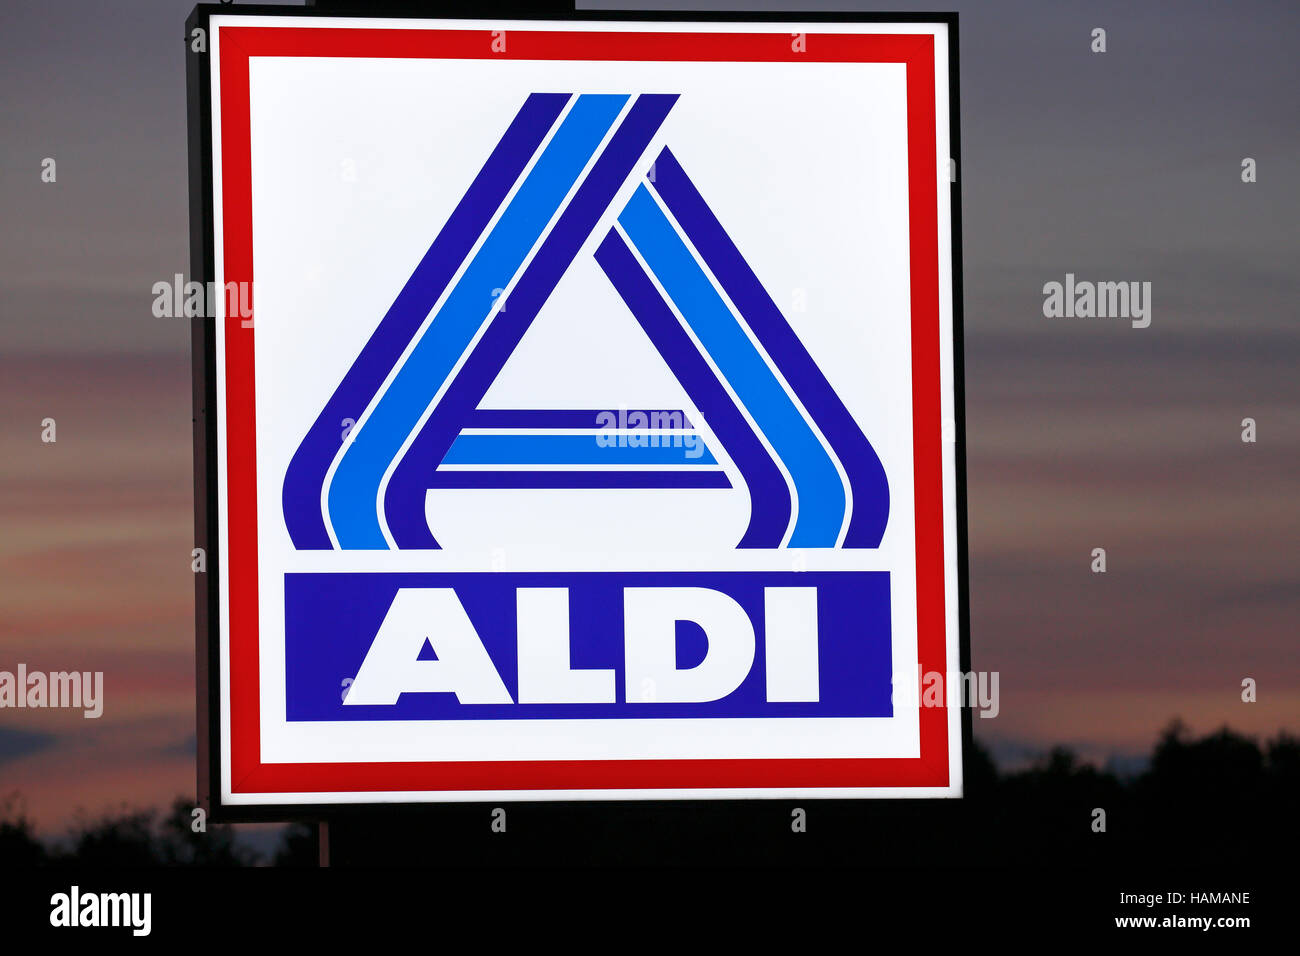 aldi nord stock photos aldi nord stock images alamy